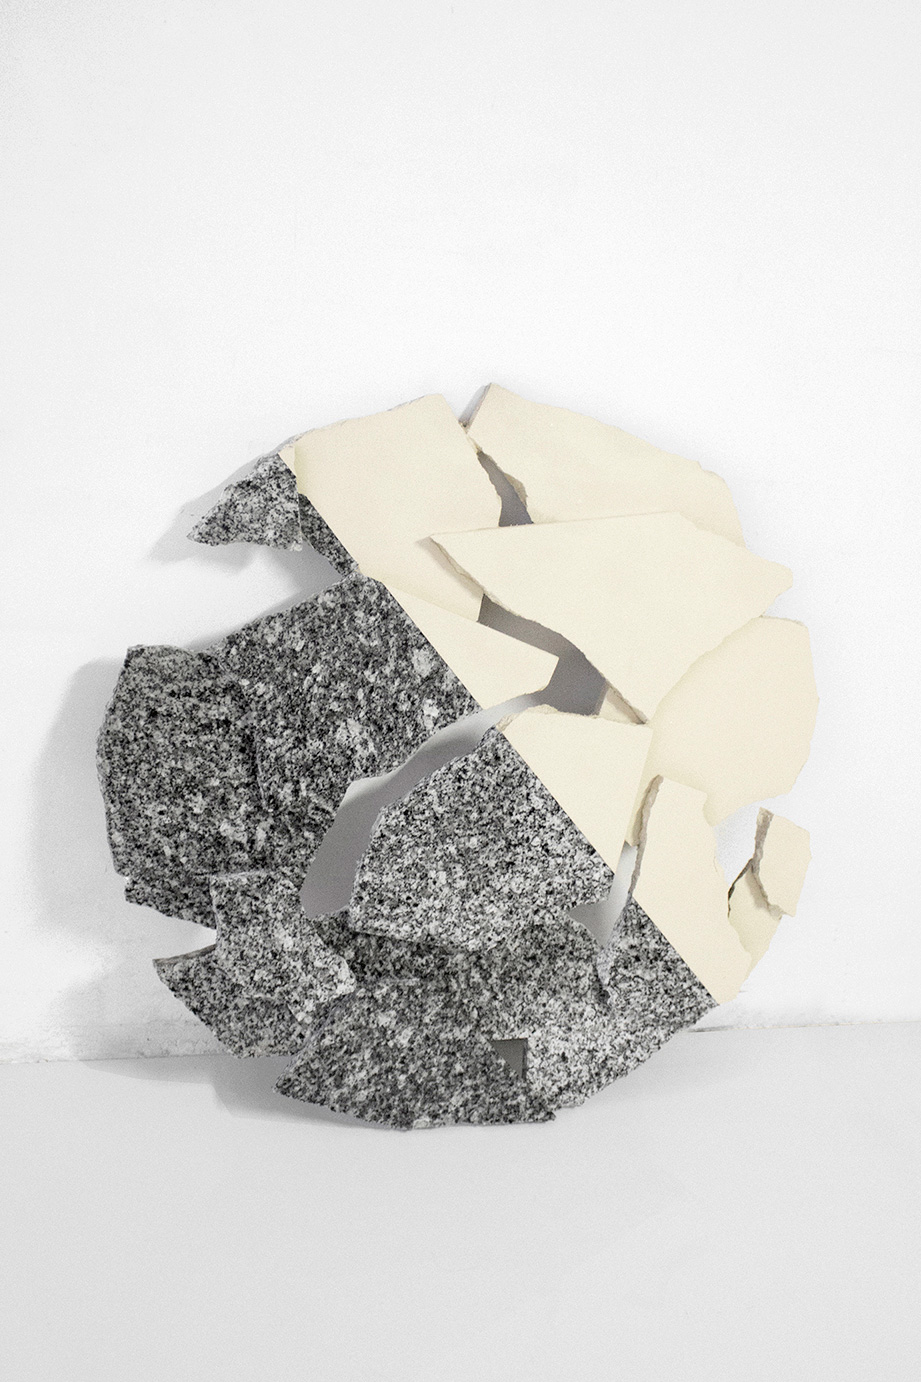 Carla Cascales' Sculpture Project, Moon | Yellowtrace